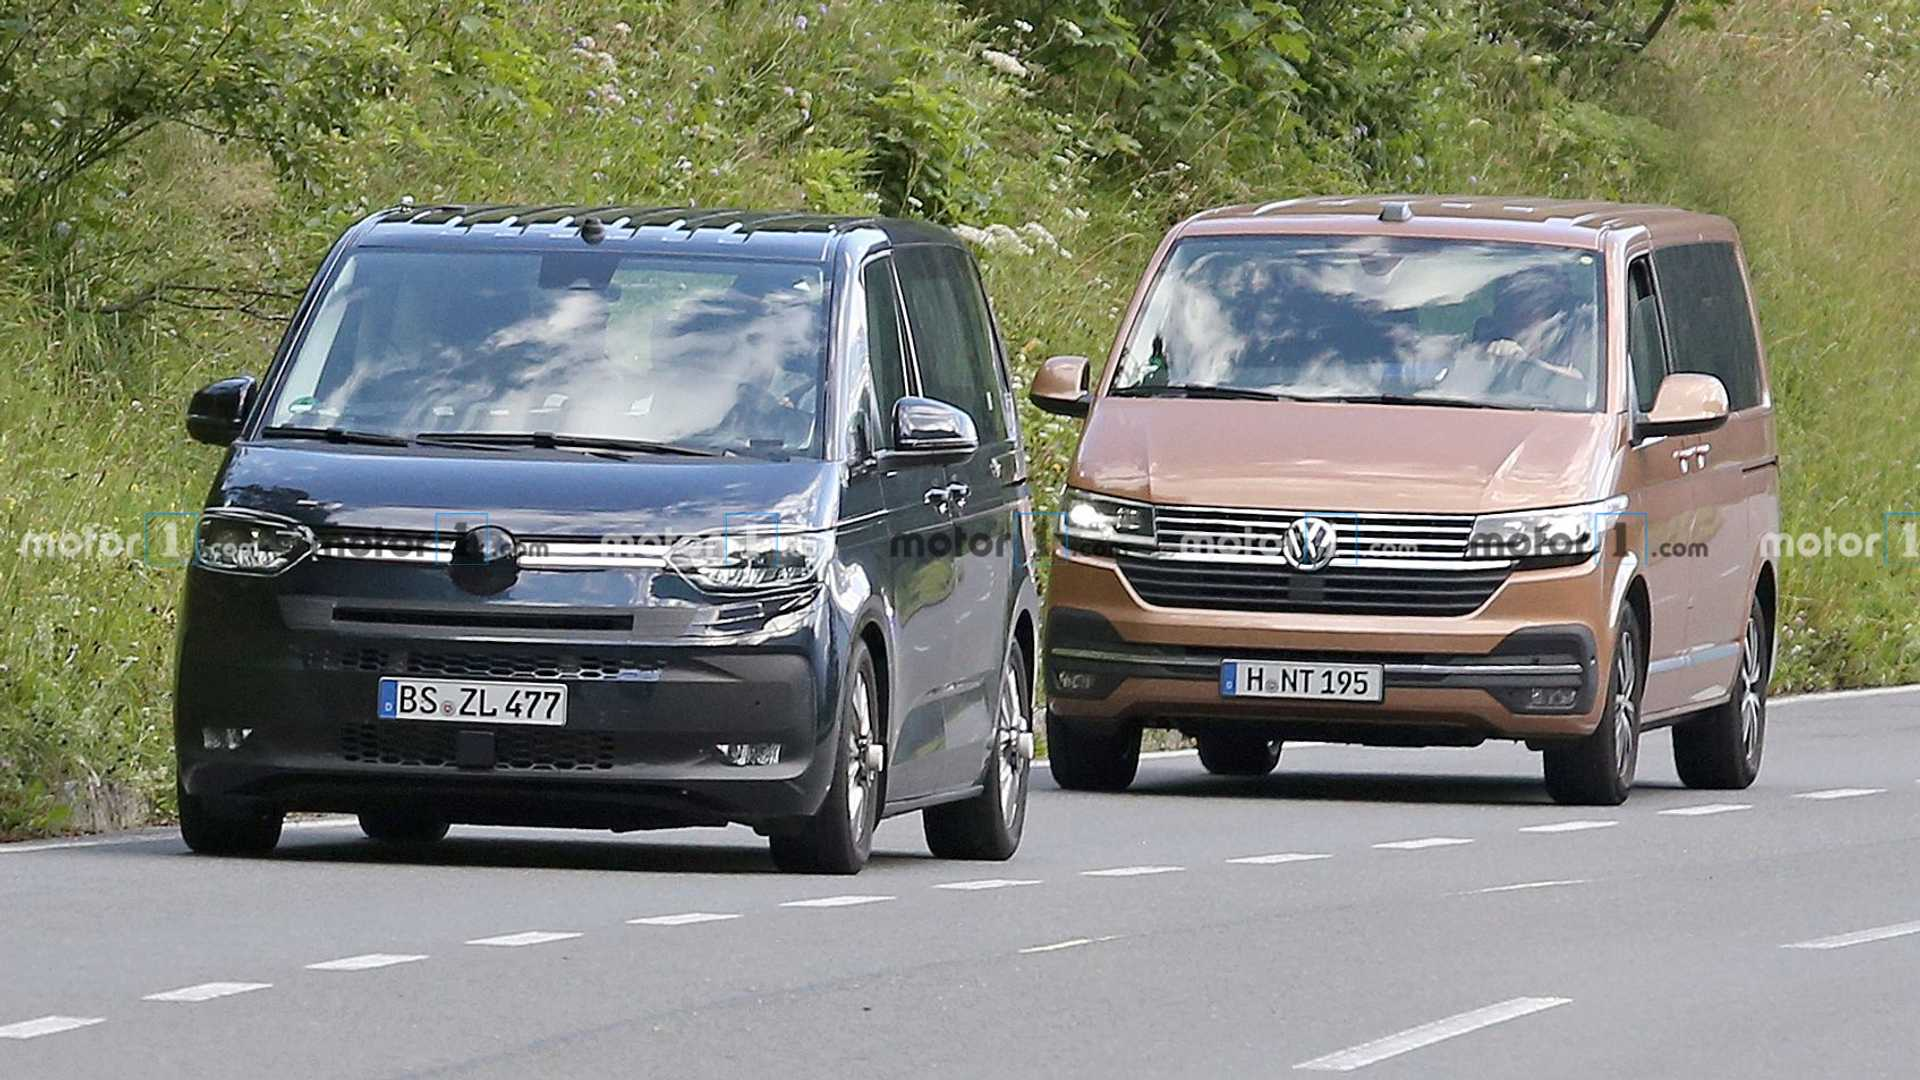 2021 - [Volkswagen] Transporter [T7] - Page 3 Vw-transporter-t7-new-spy-photo-new-and-old-model